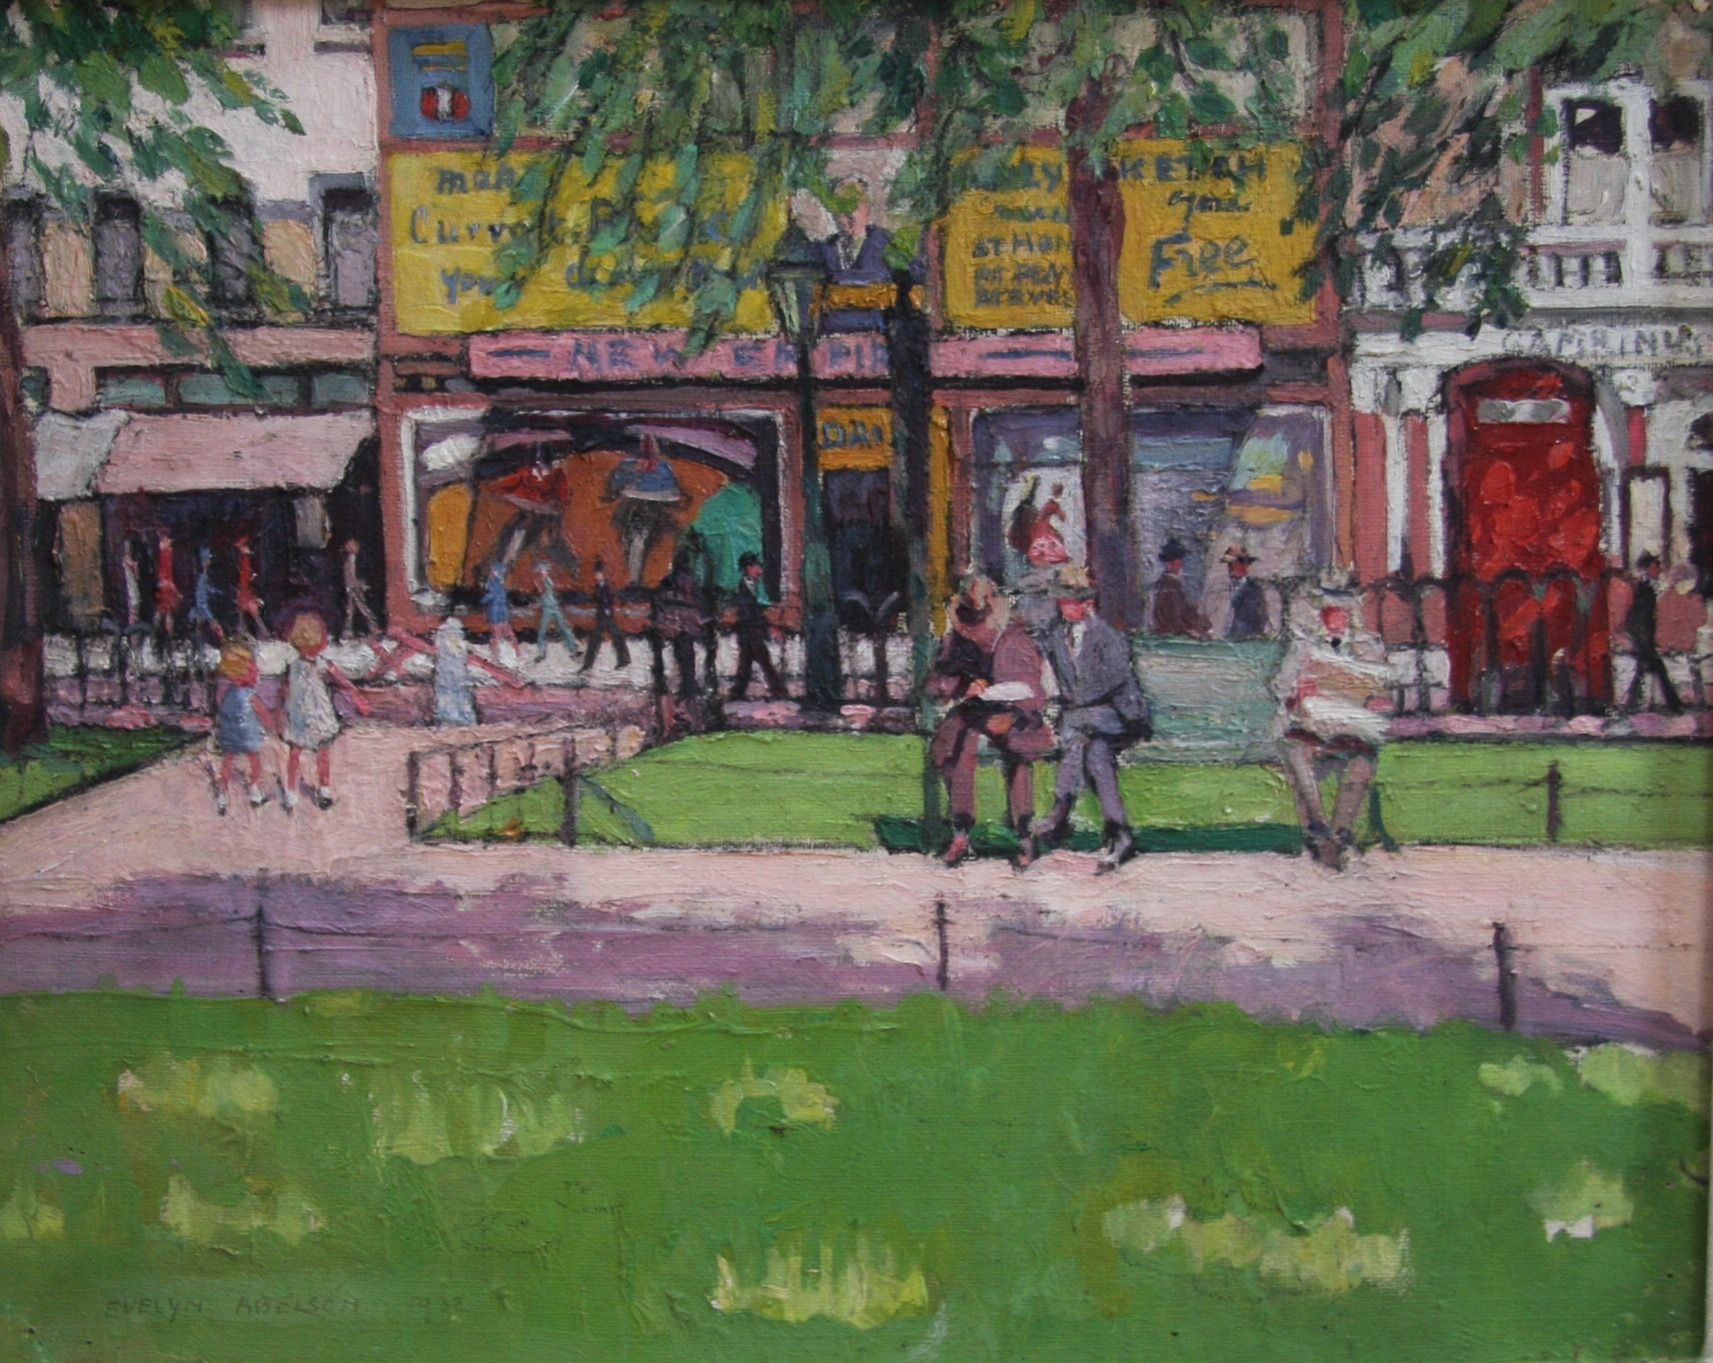 Collecting 20th Century Art - 'Leicester Square, London' by Evelyn Abelson